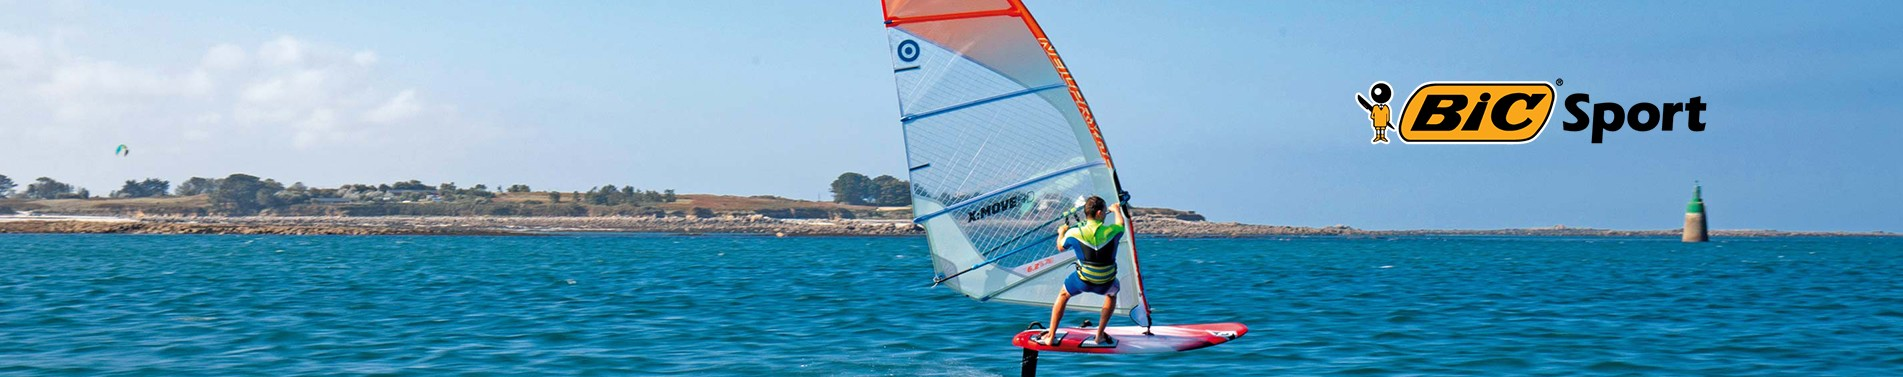 Bic WaterSport